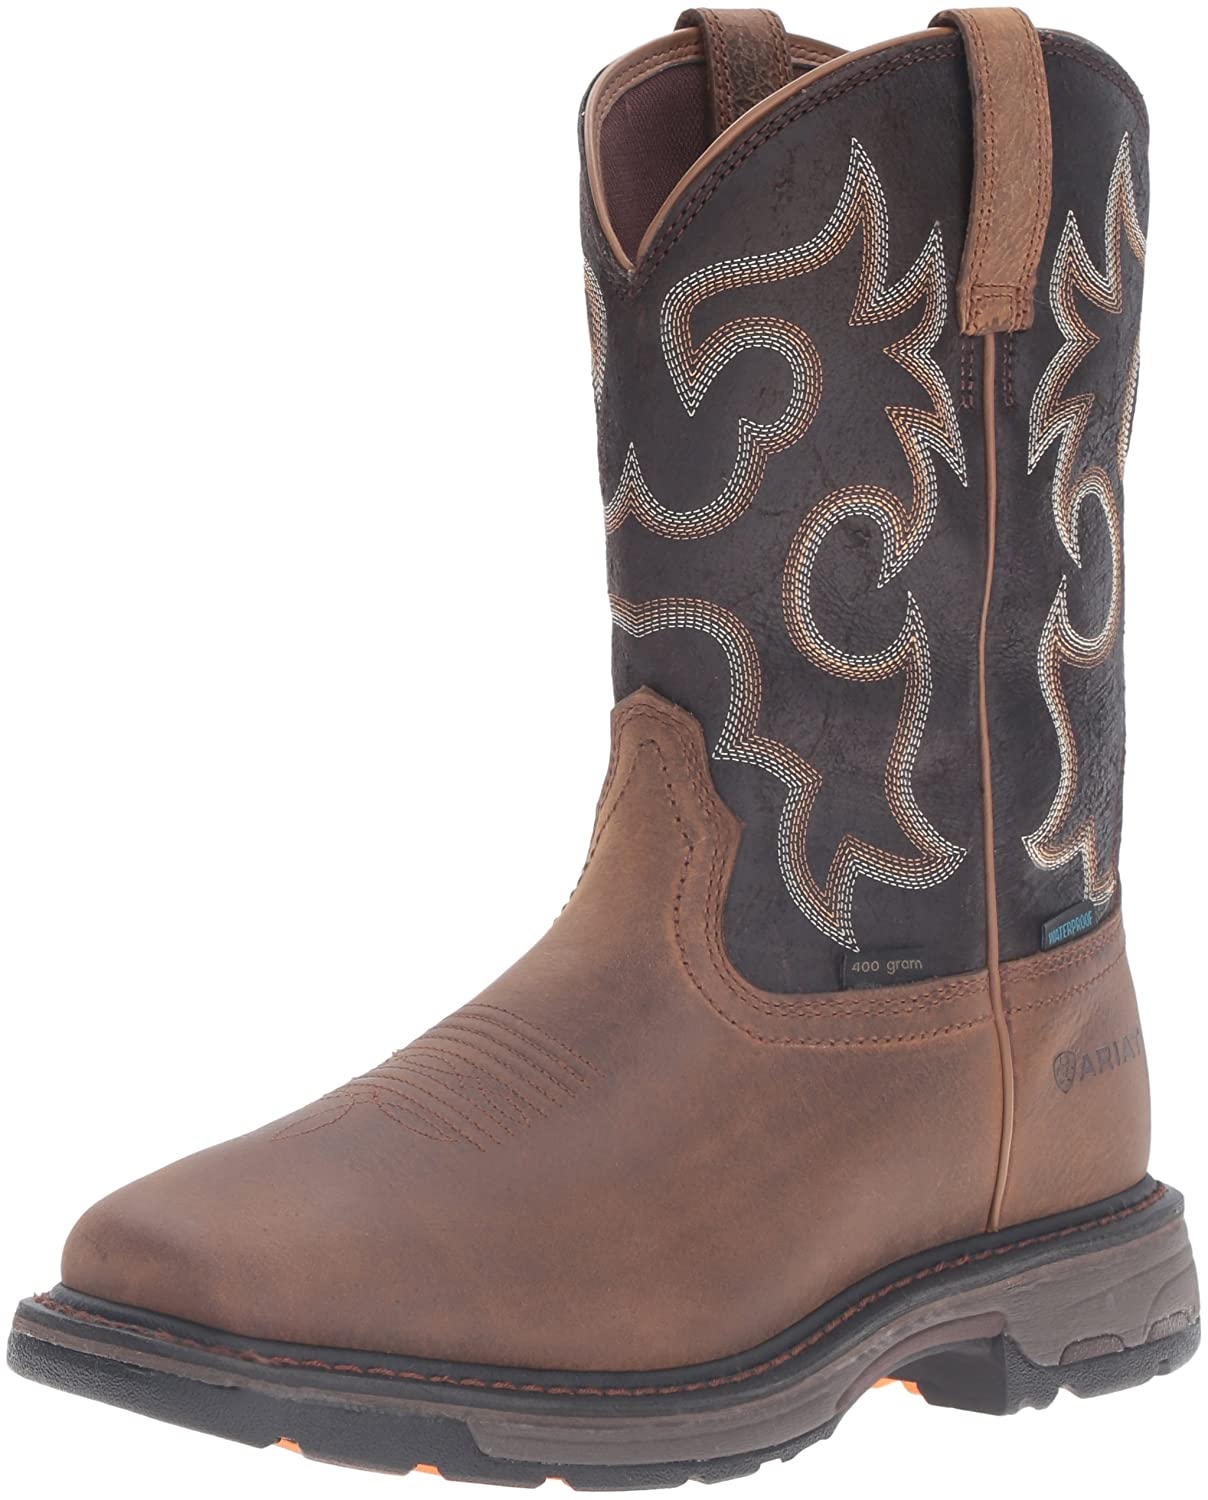 Ariat メンズ B01BL5YX0U 8 2E US|Rye Brown/Coffee Rye Brown/Coffee 8 2E US